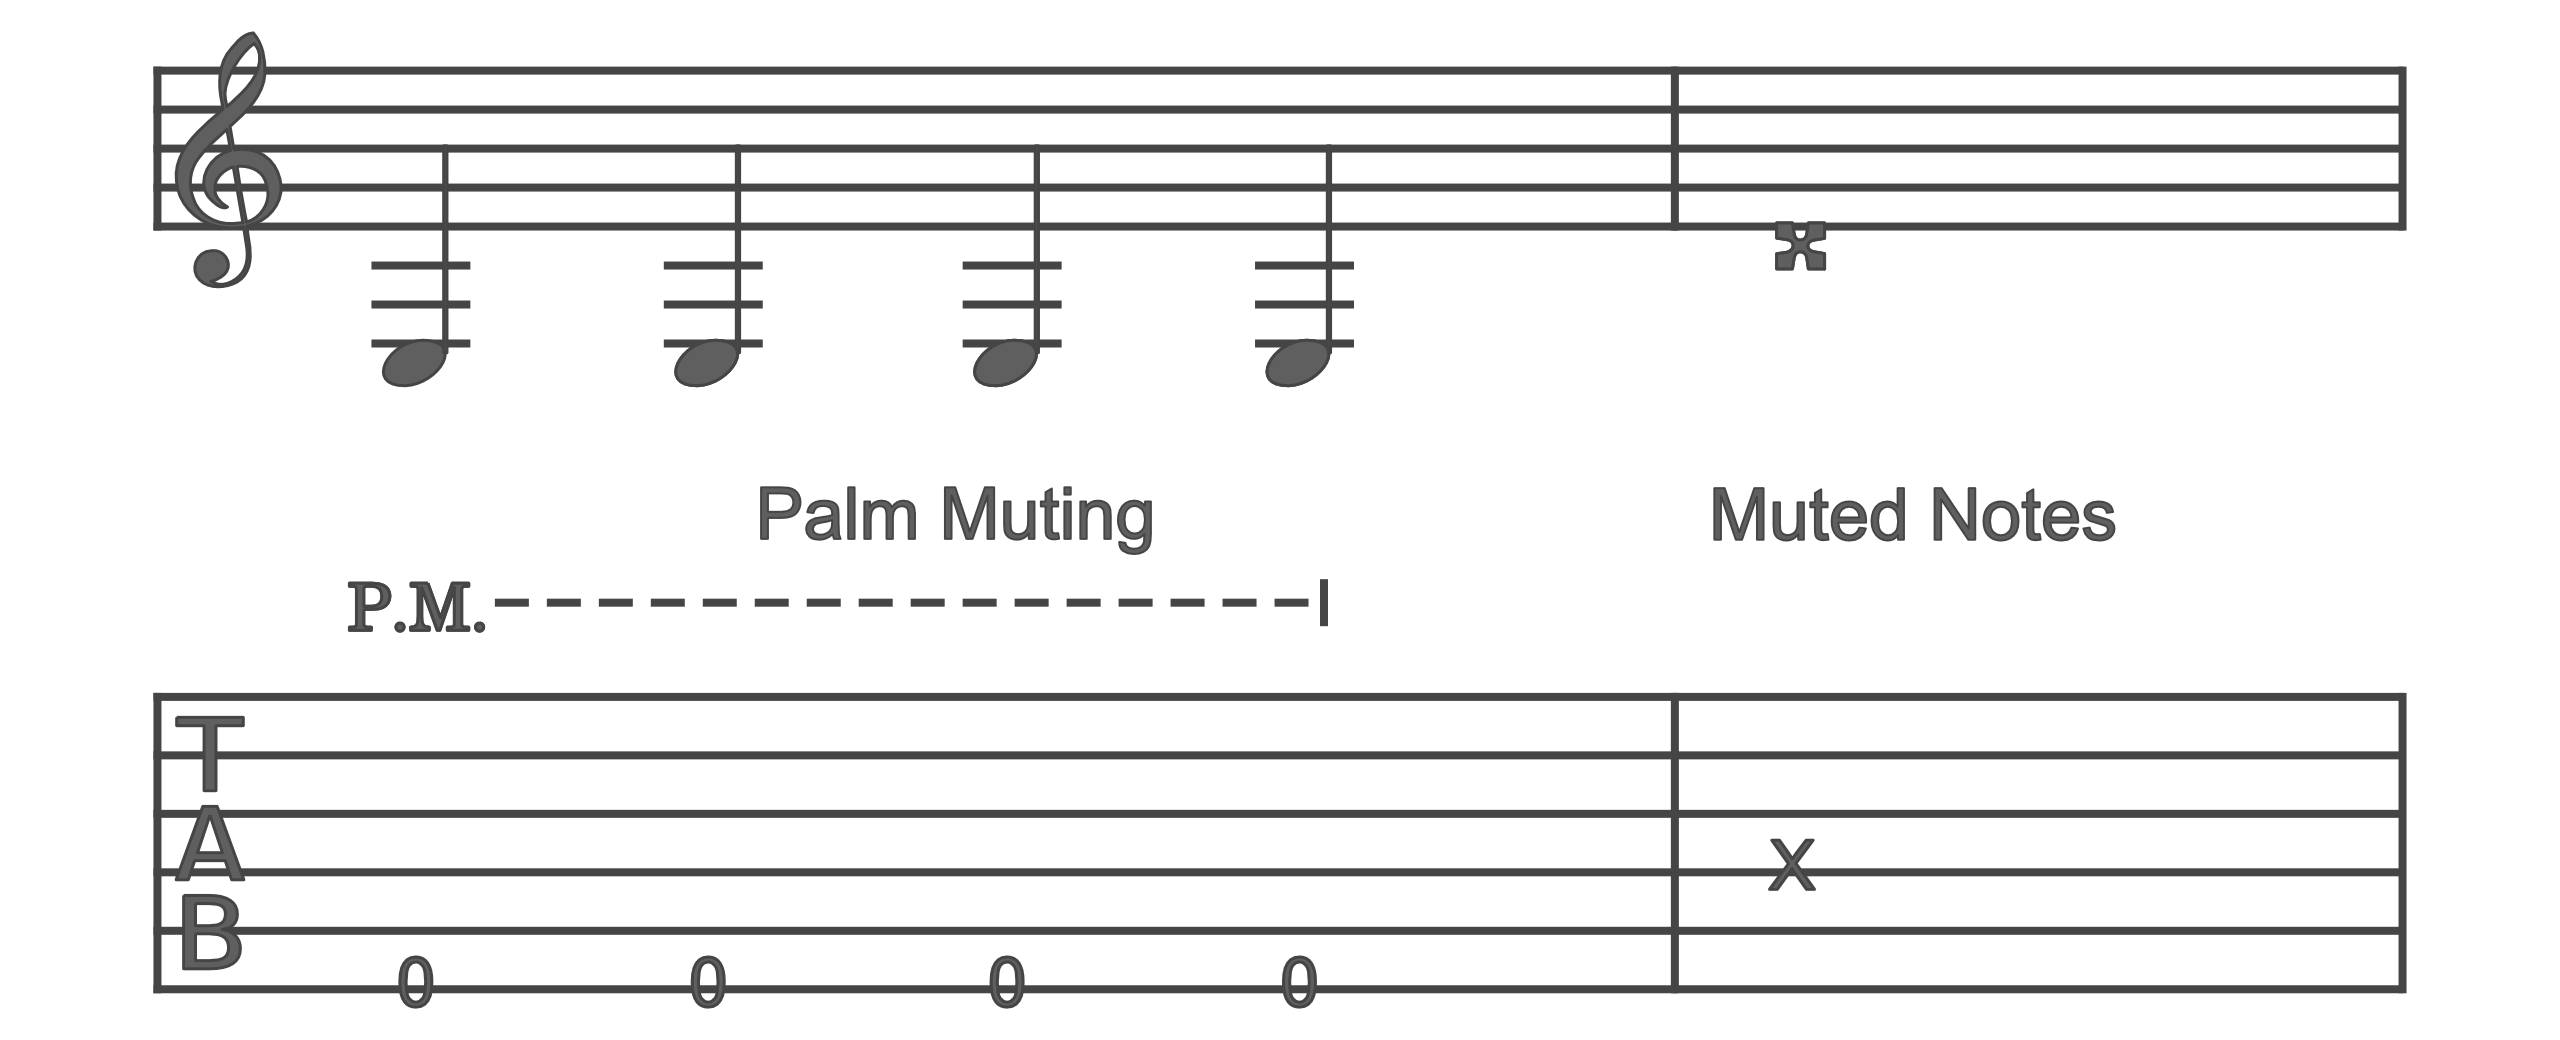 Tab Palm Muting & Muted Notes